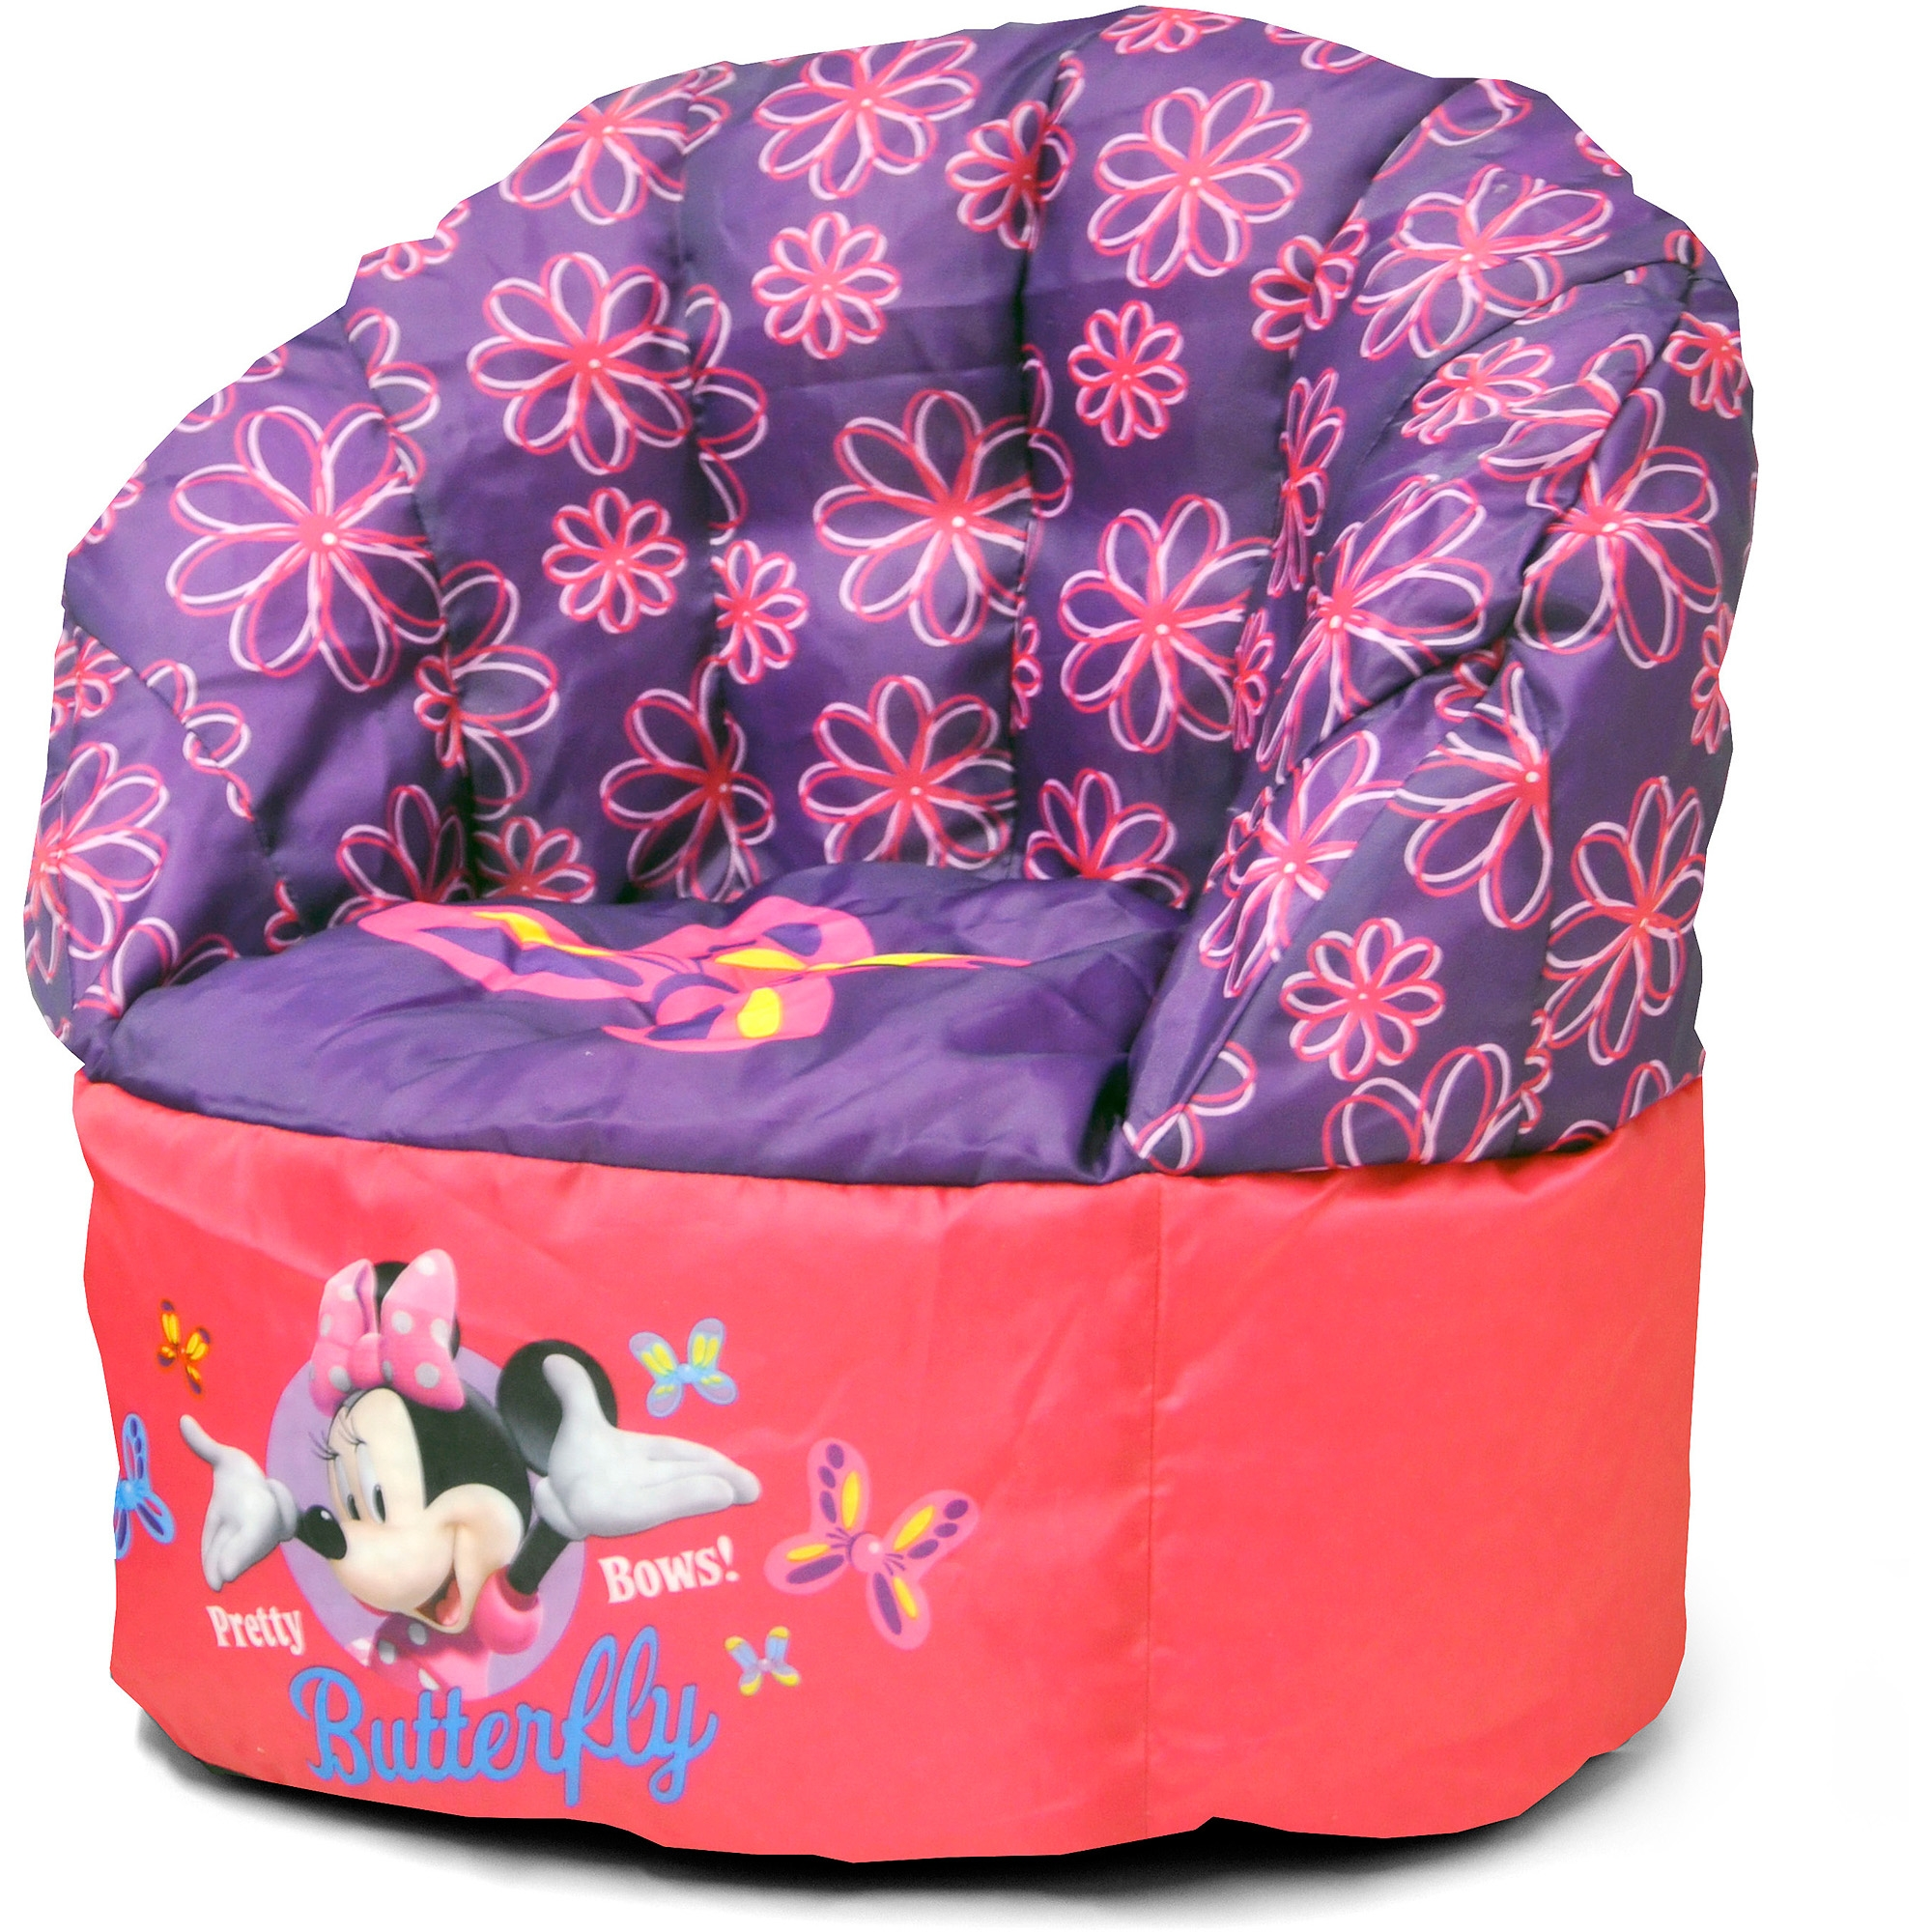 Disney Minnie Mouse Sofa Chair Walmart In Disney Sofa Chairs (View 13 of 15)